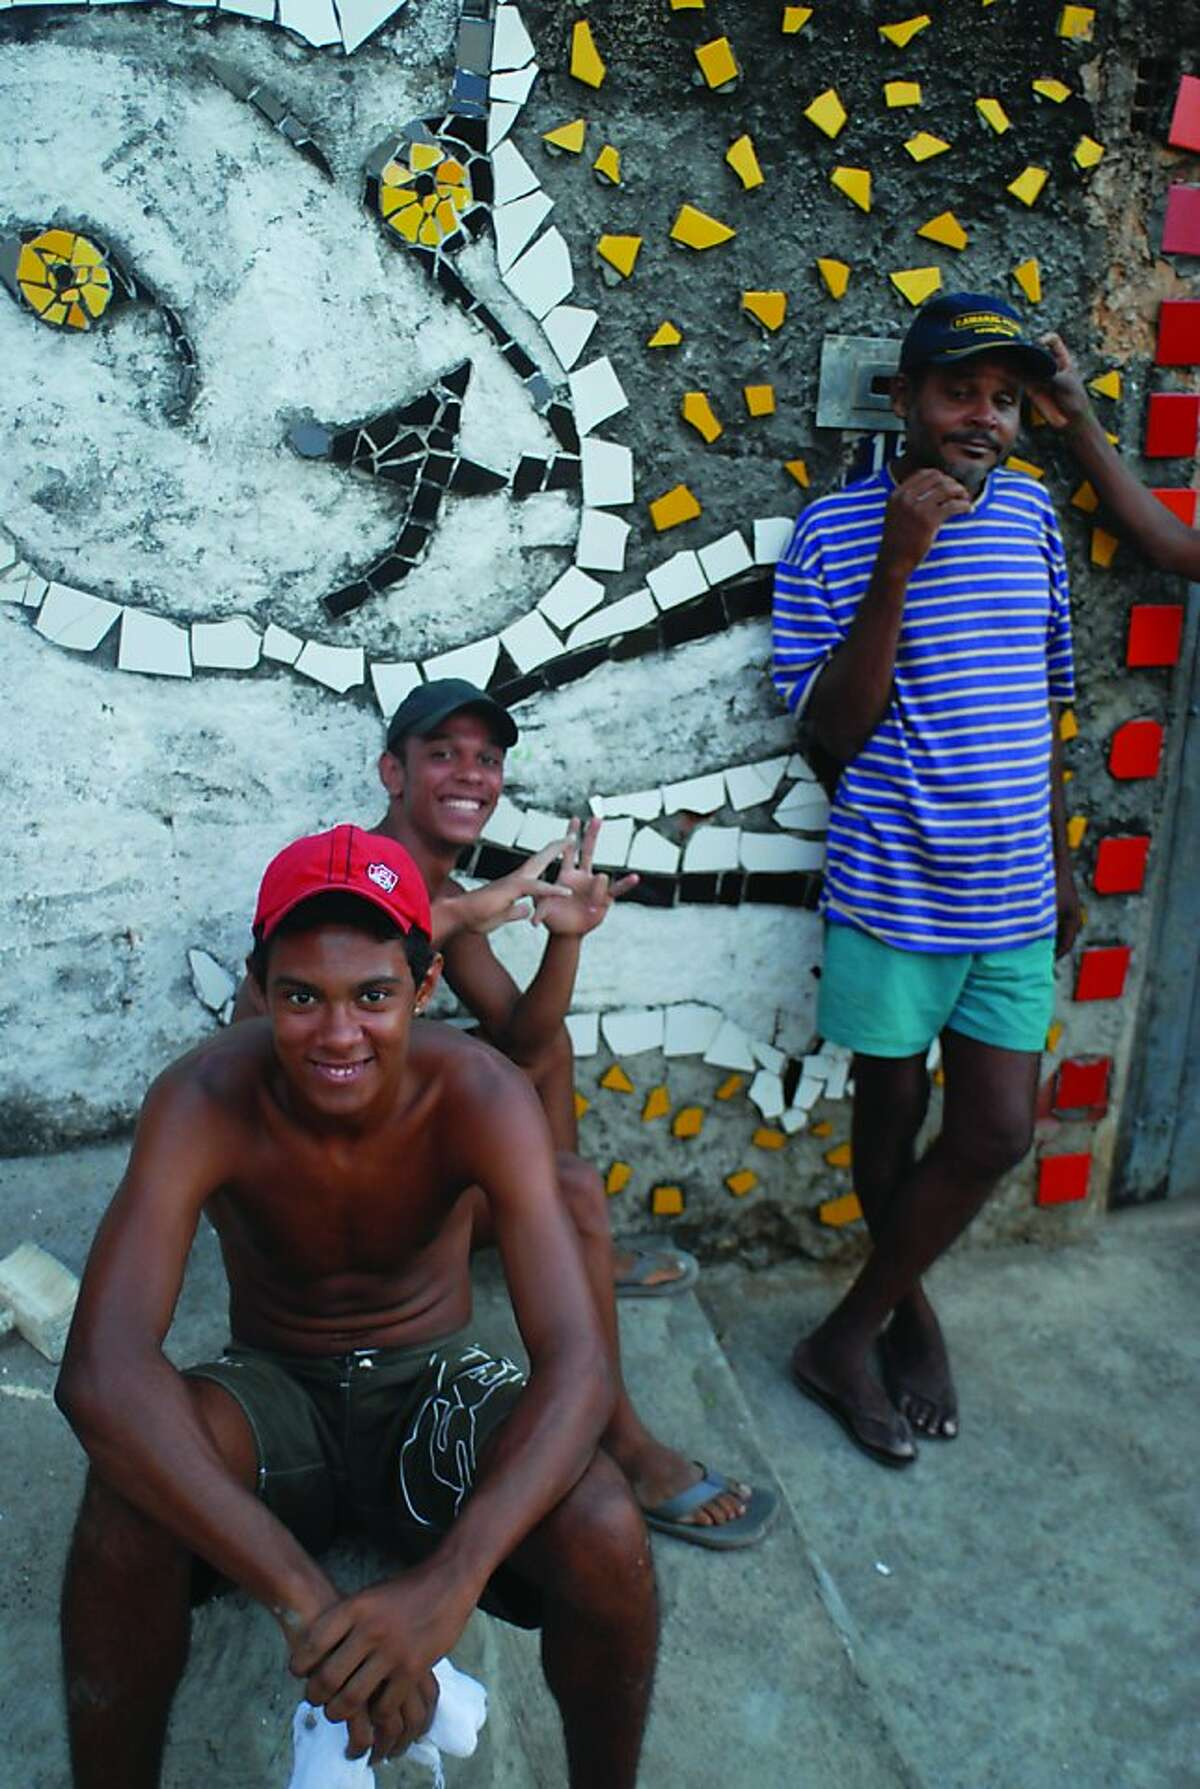 Residents of Brazilian artist Bel Borba?•s hometown, Salvador de Bahia, with his artwork, as seen in BEL BORBA AQUI, directed by Burt Sun and AndrŽ Costantini, with his work.